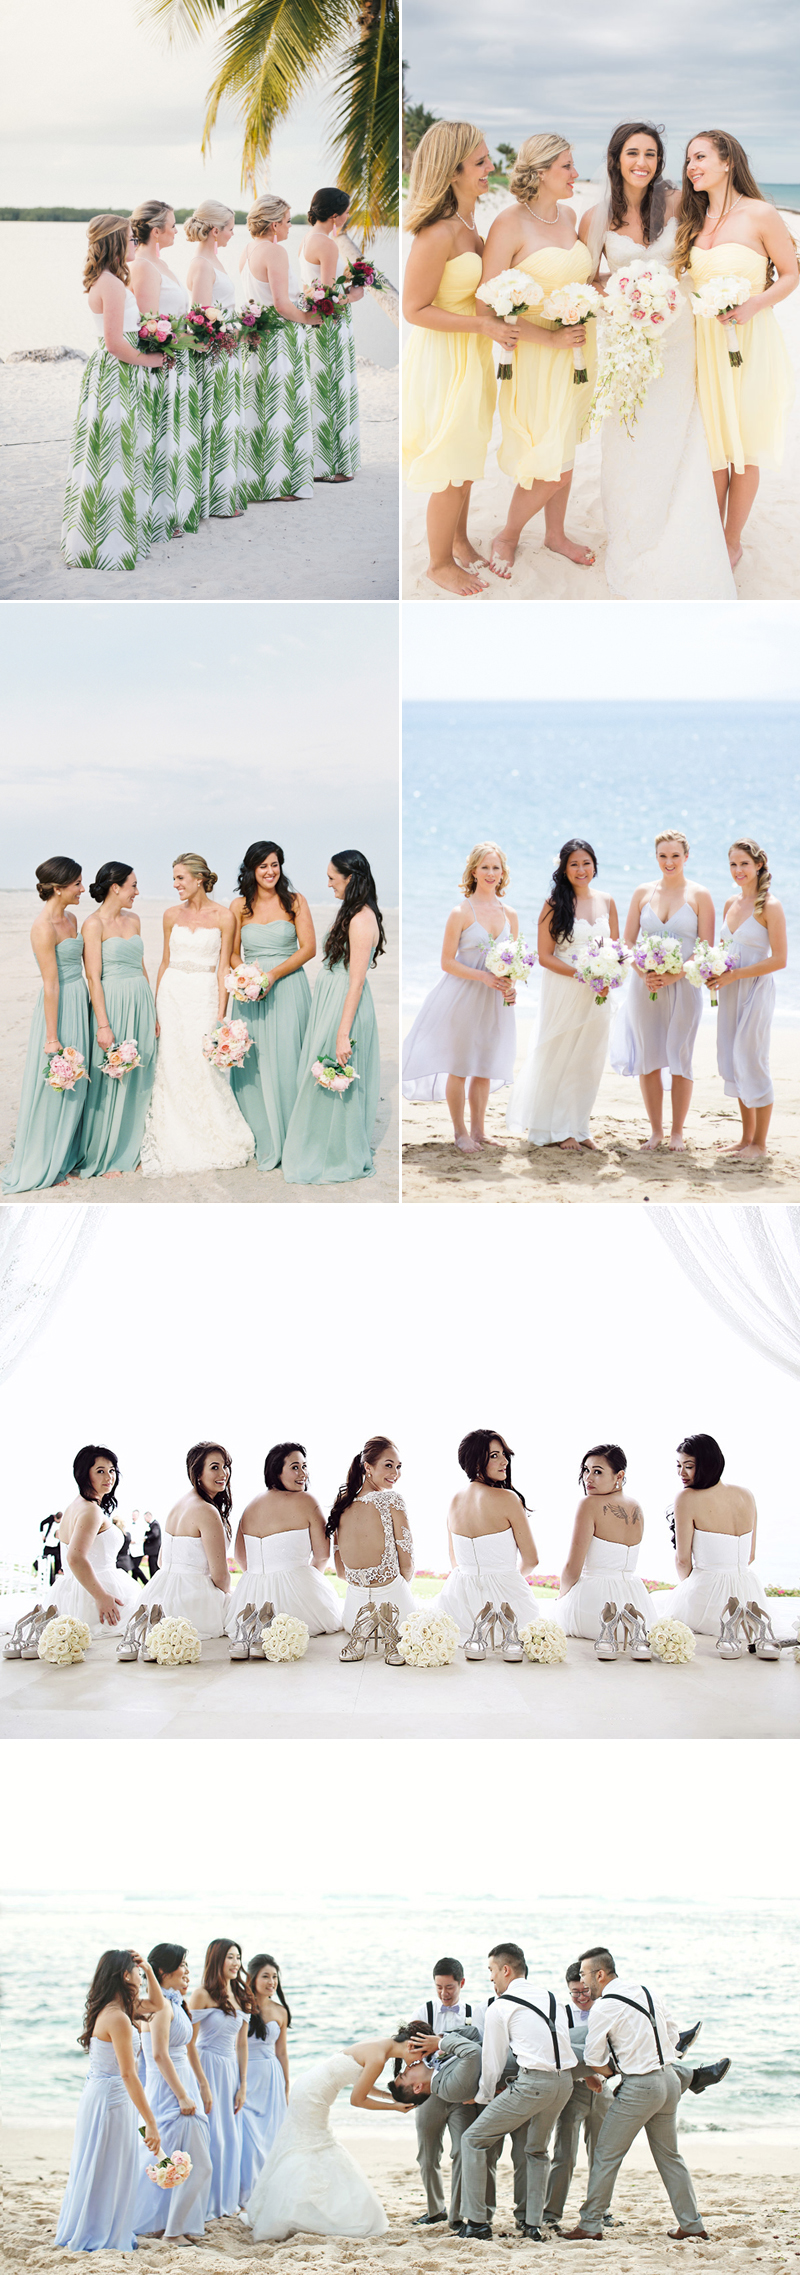 23 Romantic Beach Themed Wedding Ideas! - Praise Wedding